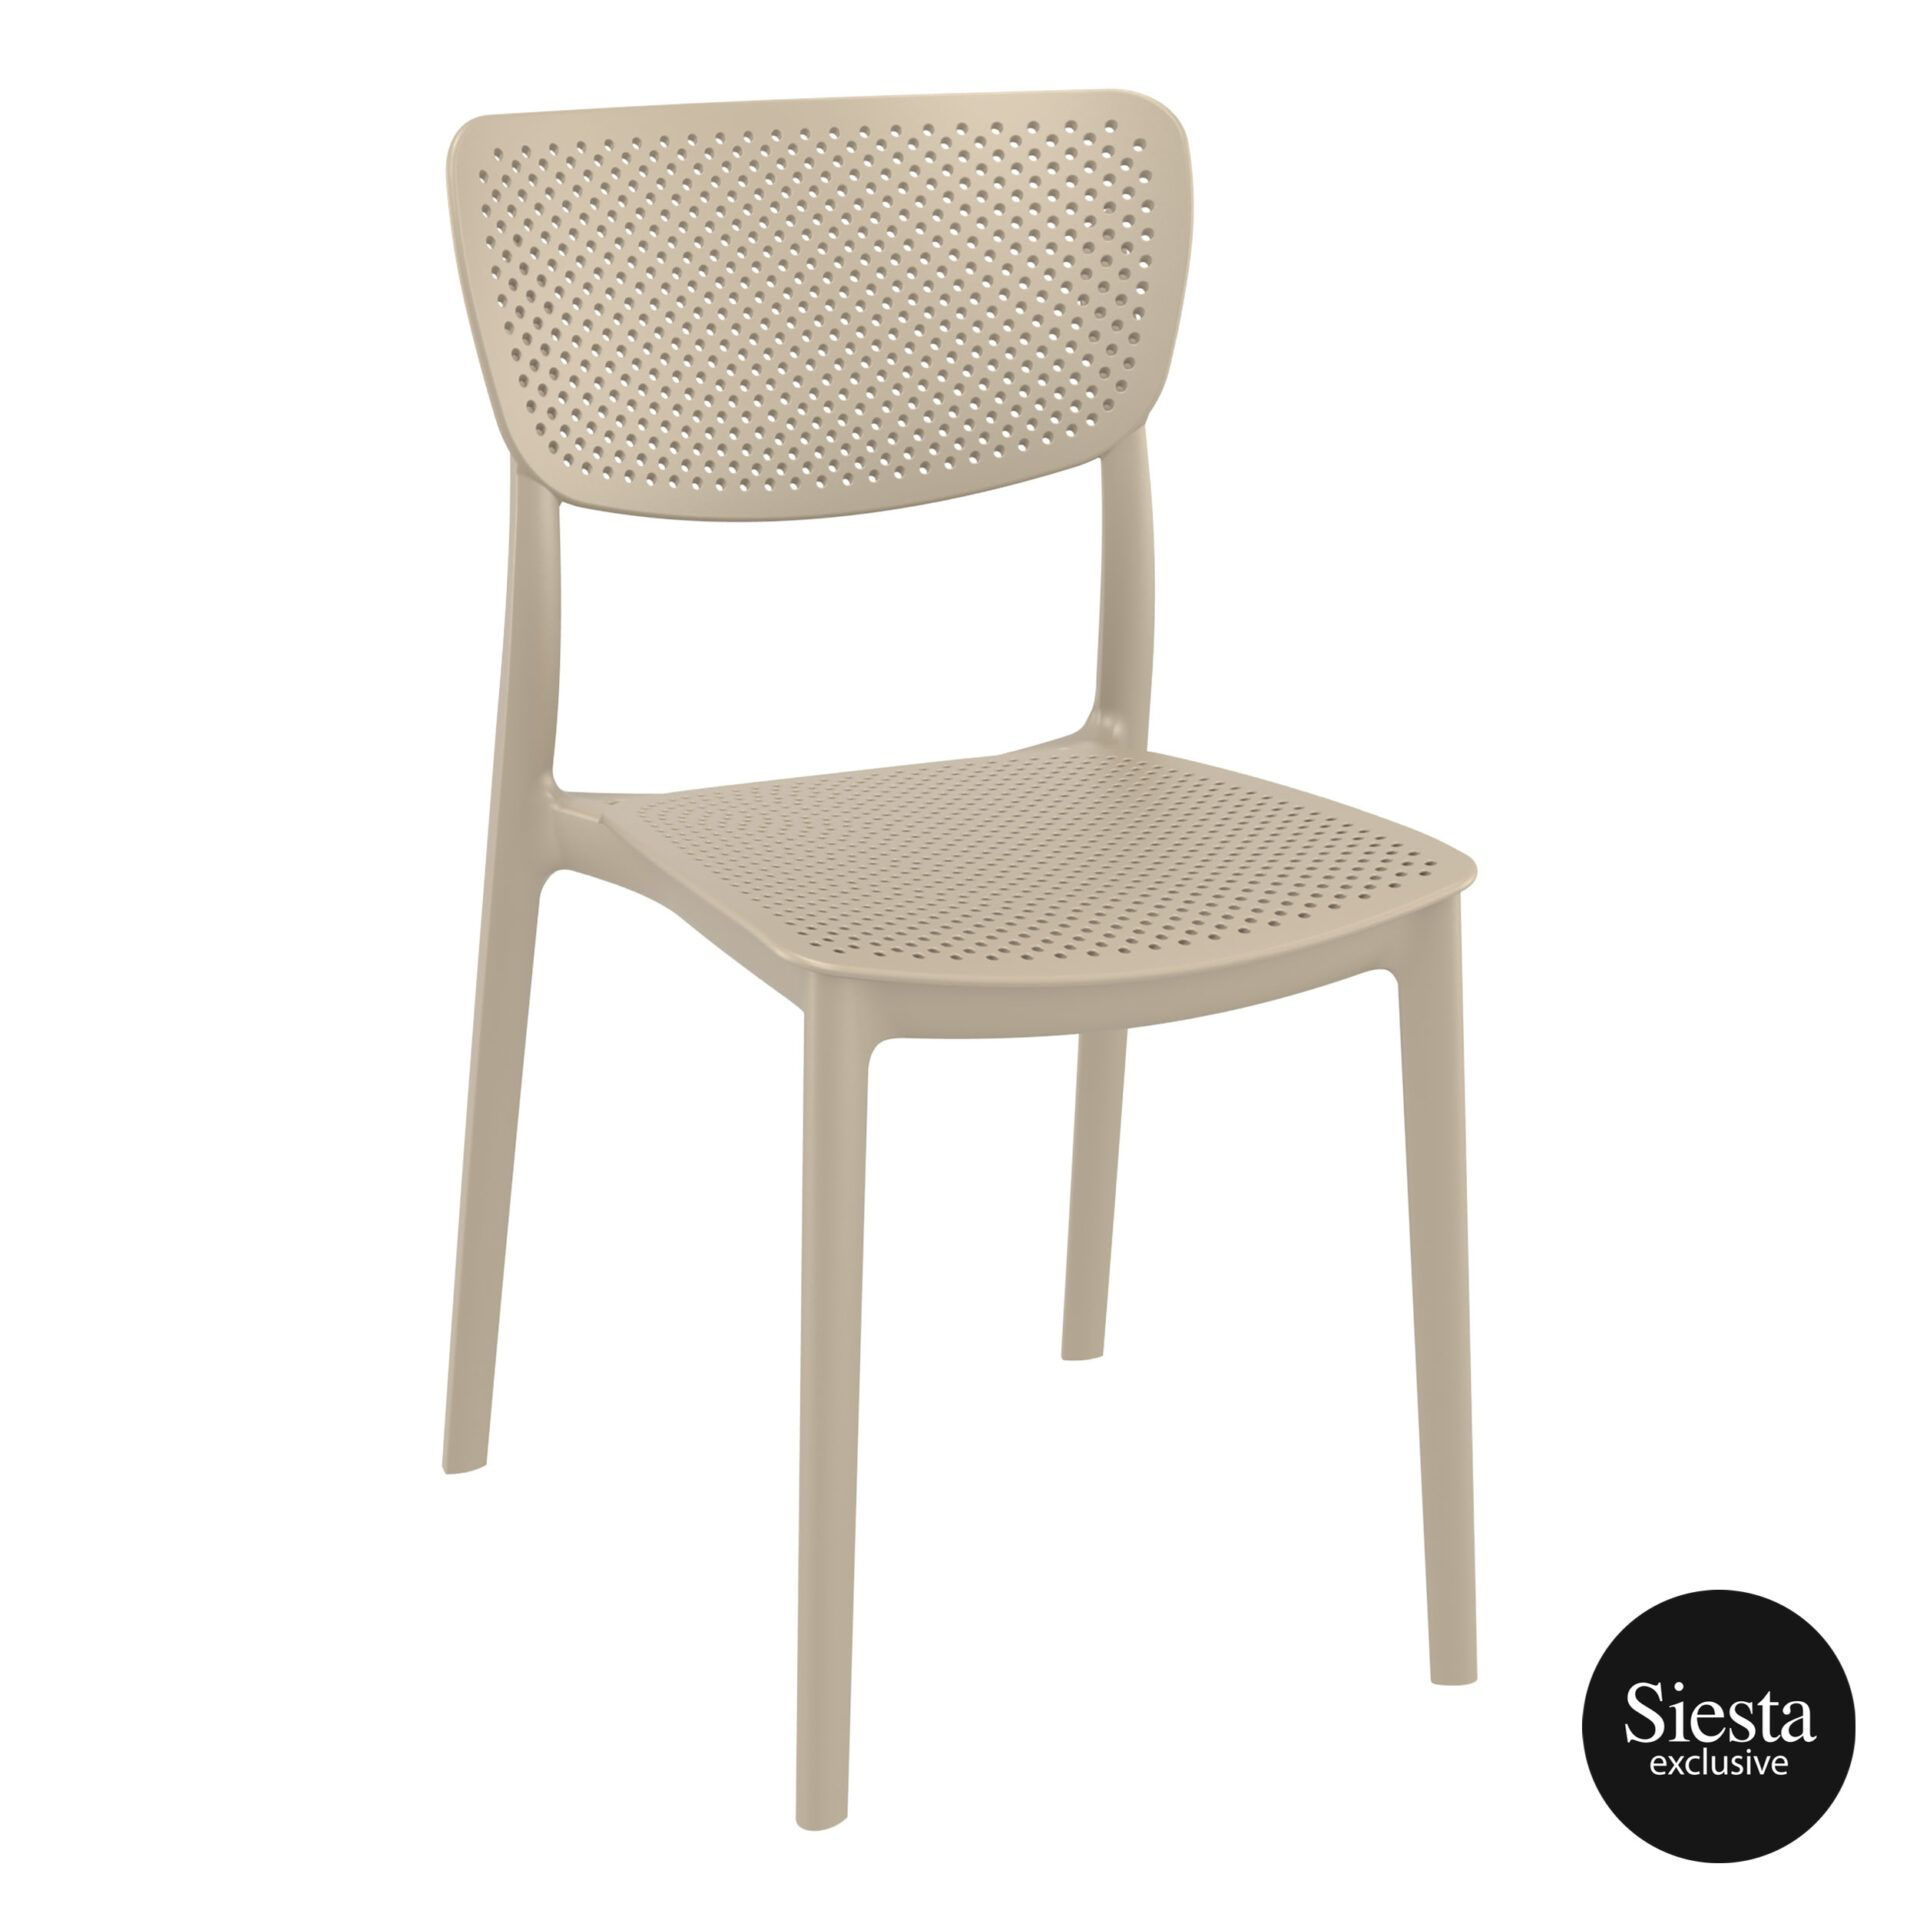 polypropylene hospitality seating lucy chair taupe front side 1